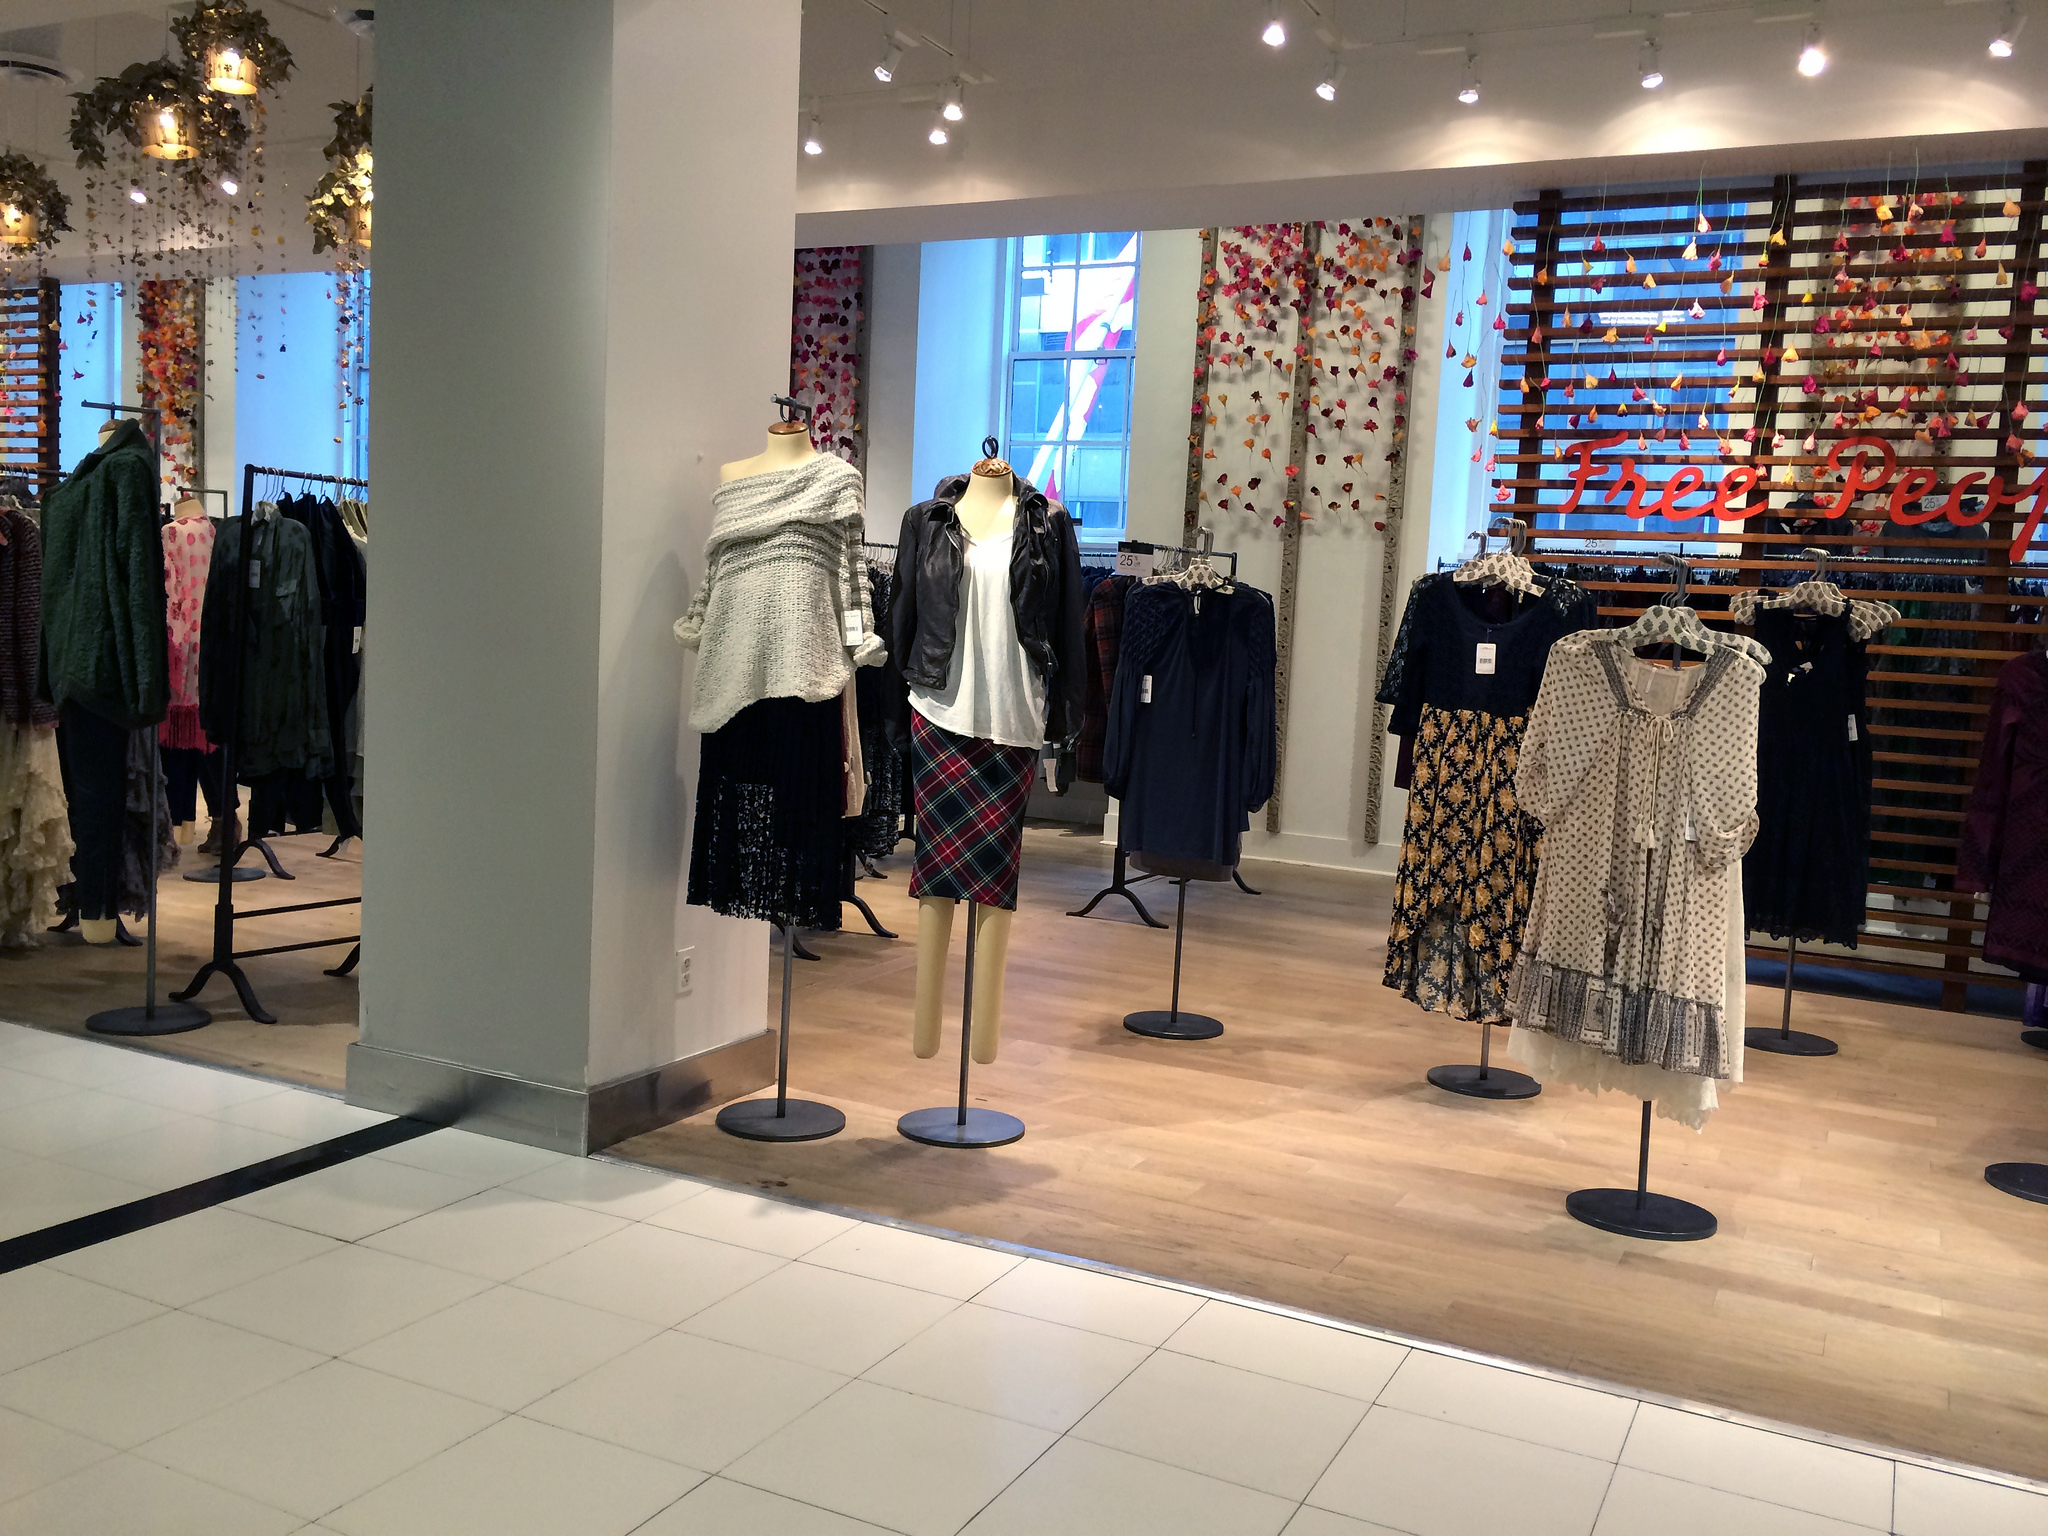 Free People fashion display at Bloomingdale's in New York. Photo by alphacityguides.